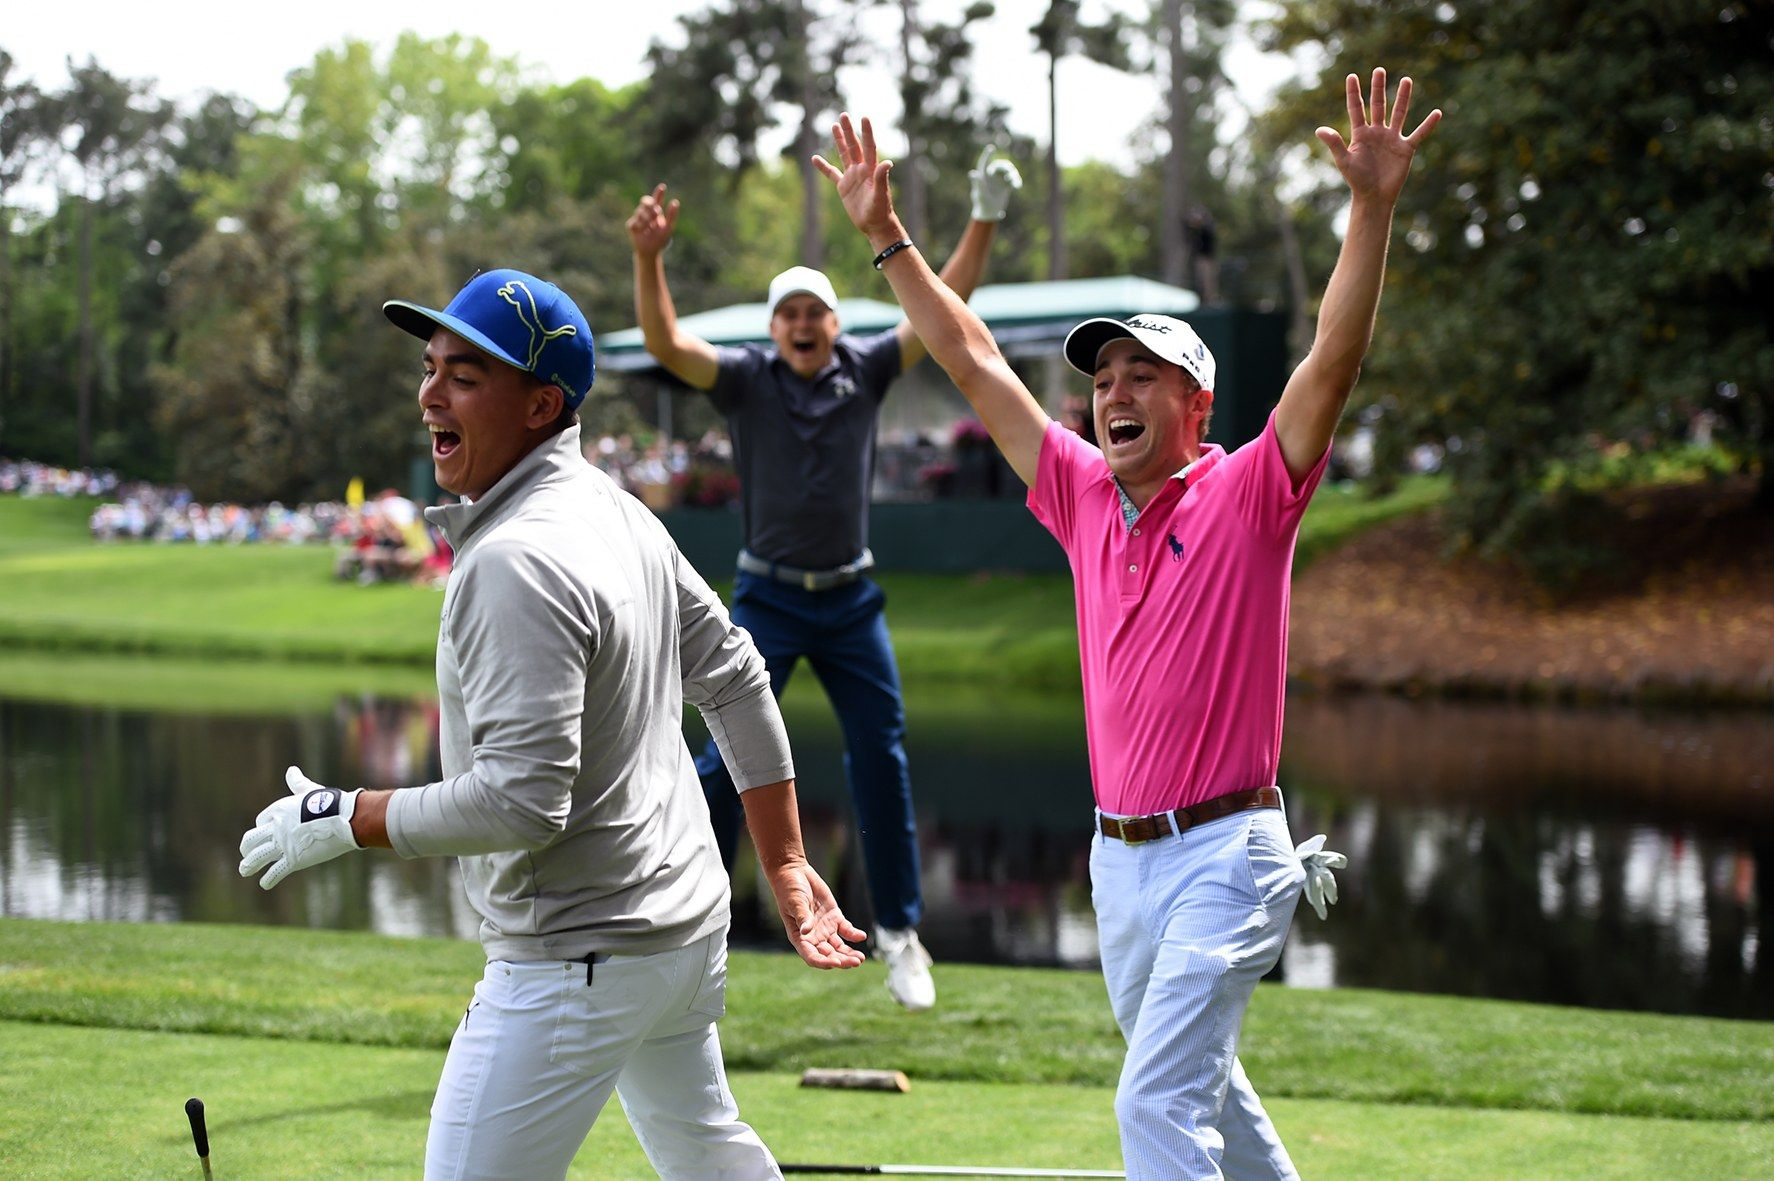 f478cf4e37fd64 Photos  At the Masters - Exclusive images from Golf Digest photographers at  Augusta - Golf Digest